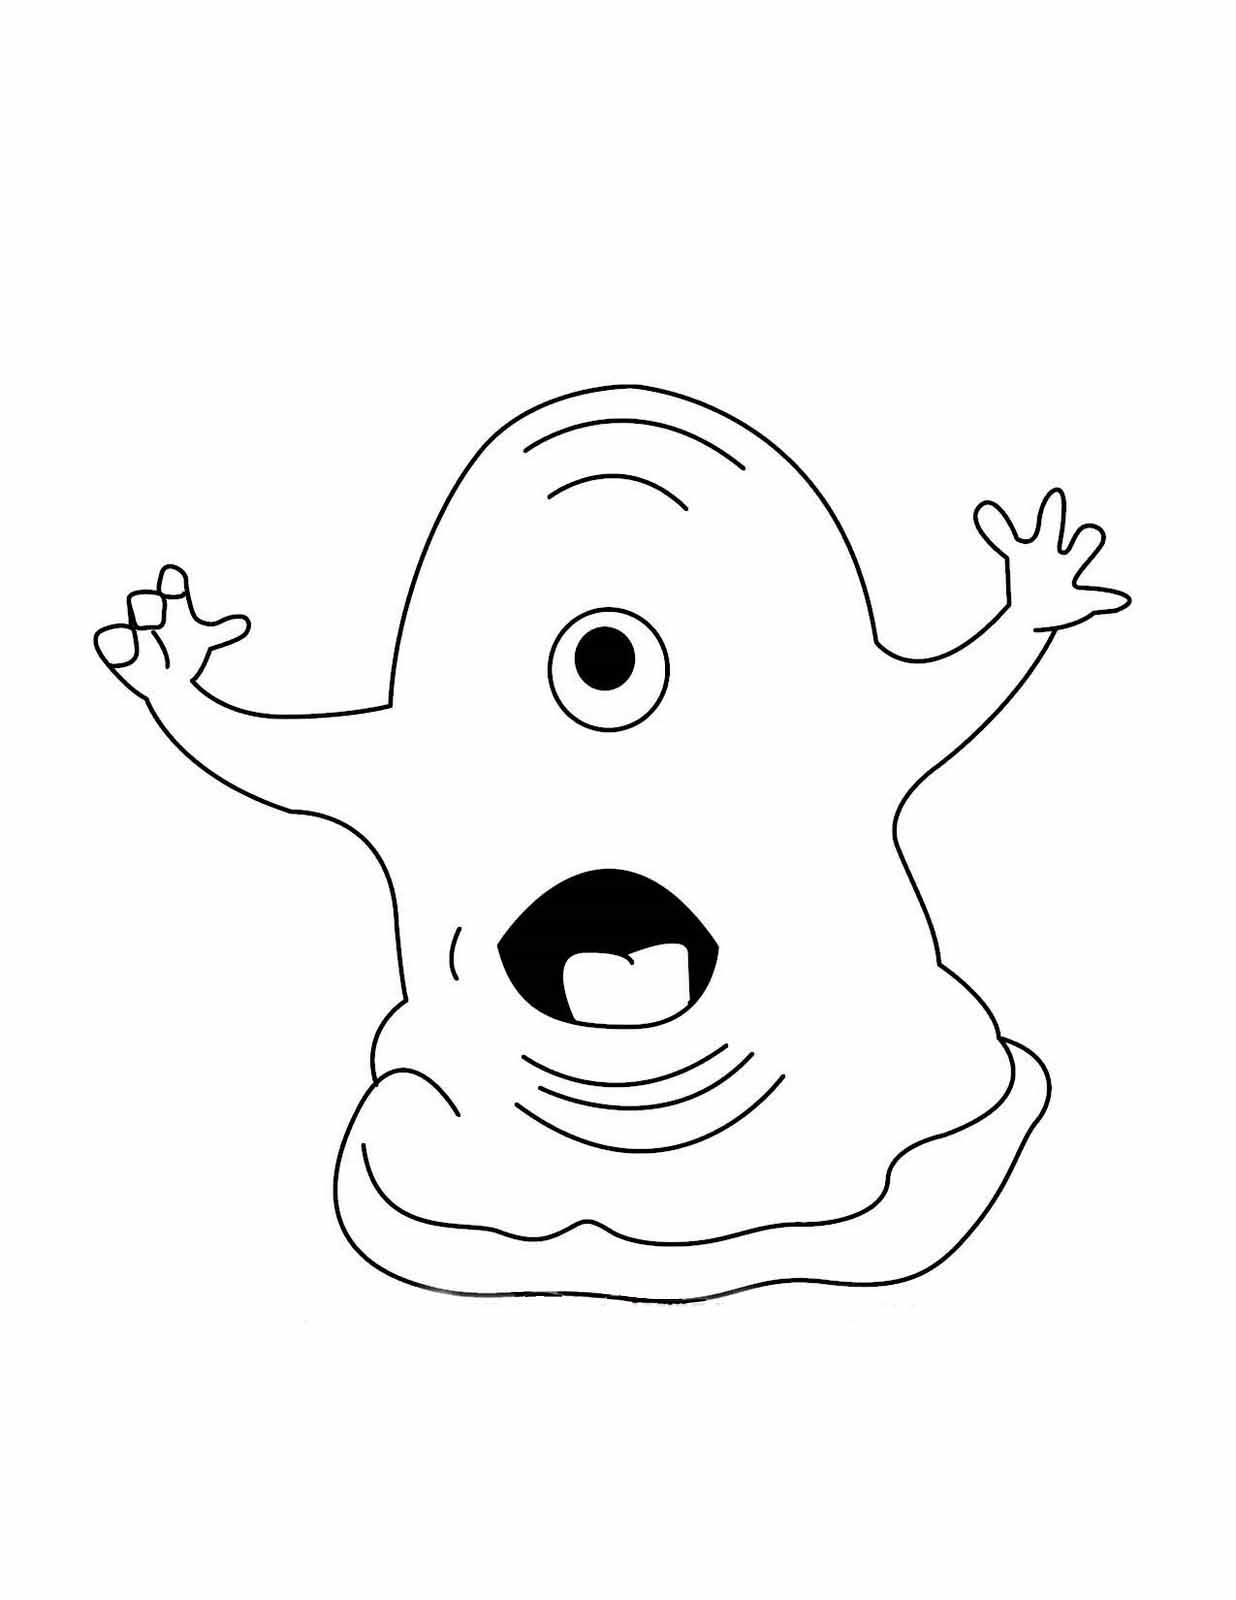 Alien Coloring Pages 4 Coloring Kids